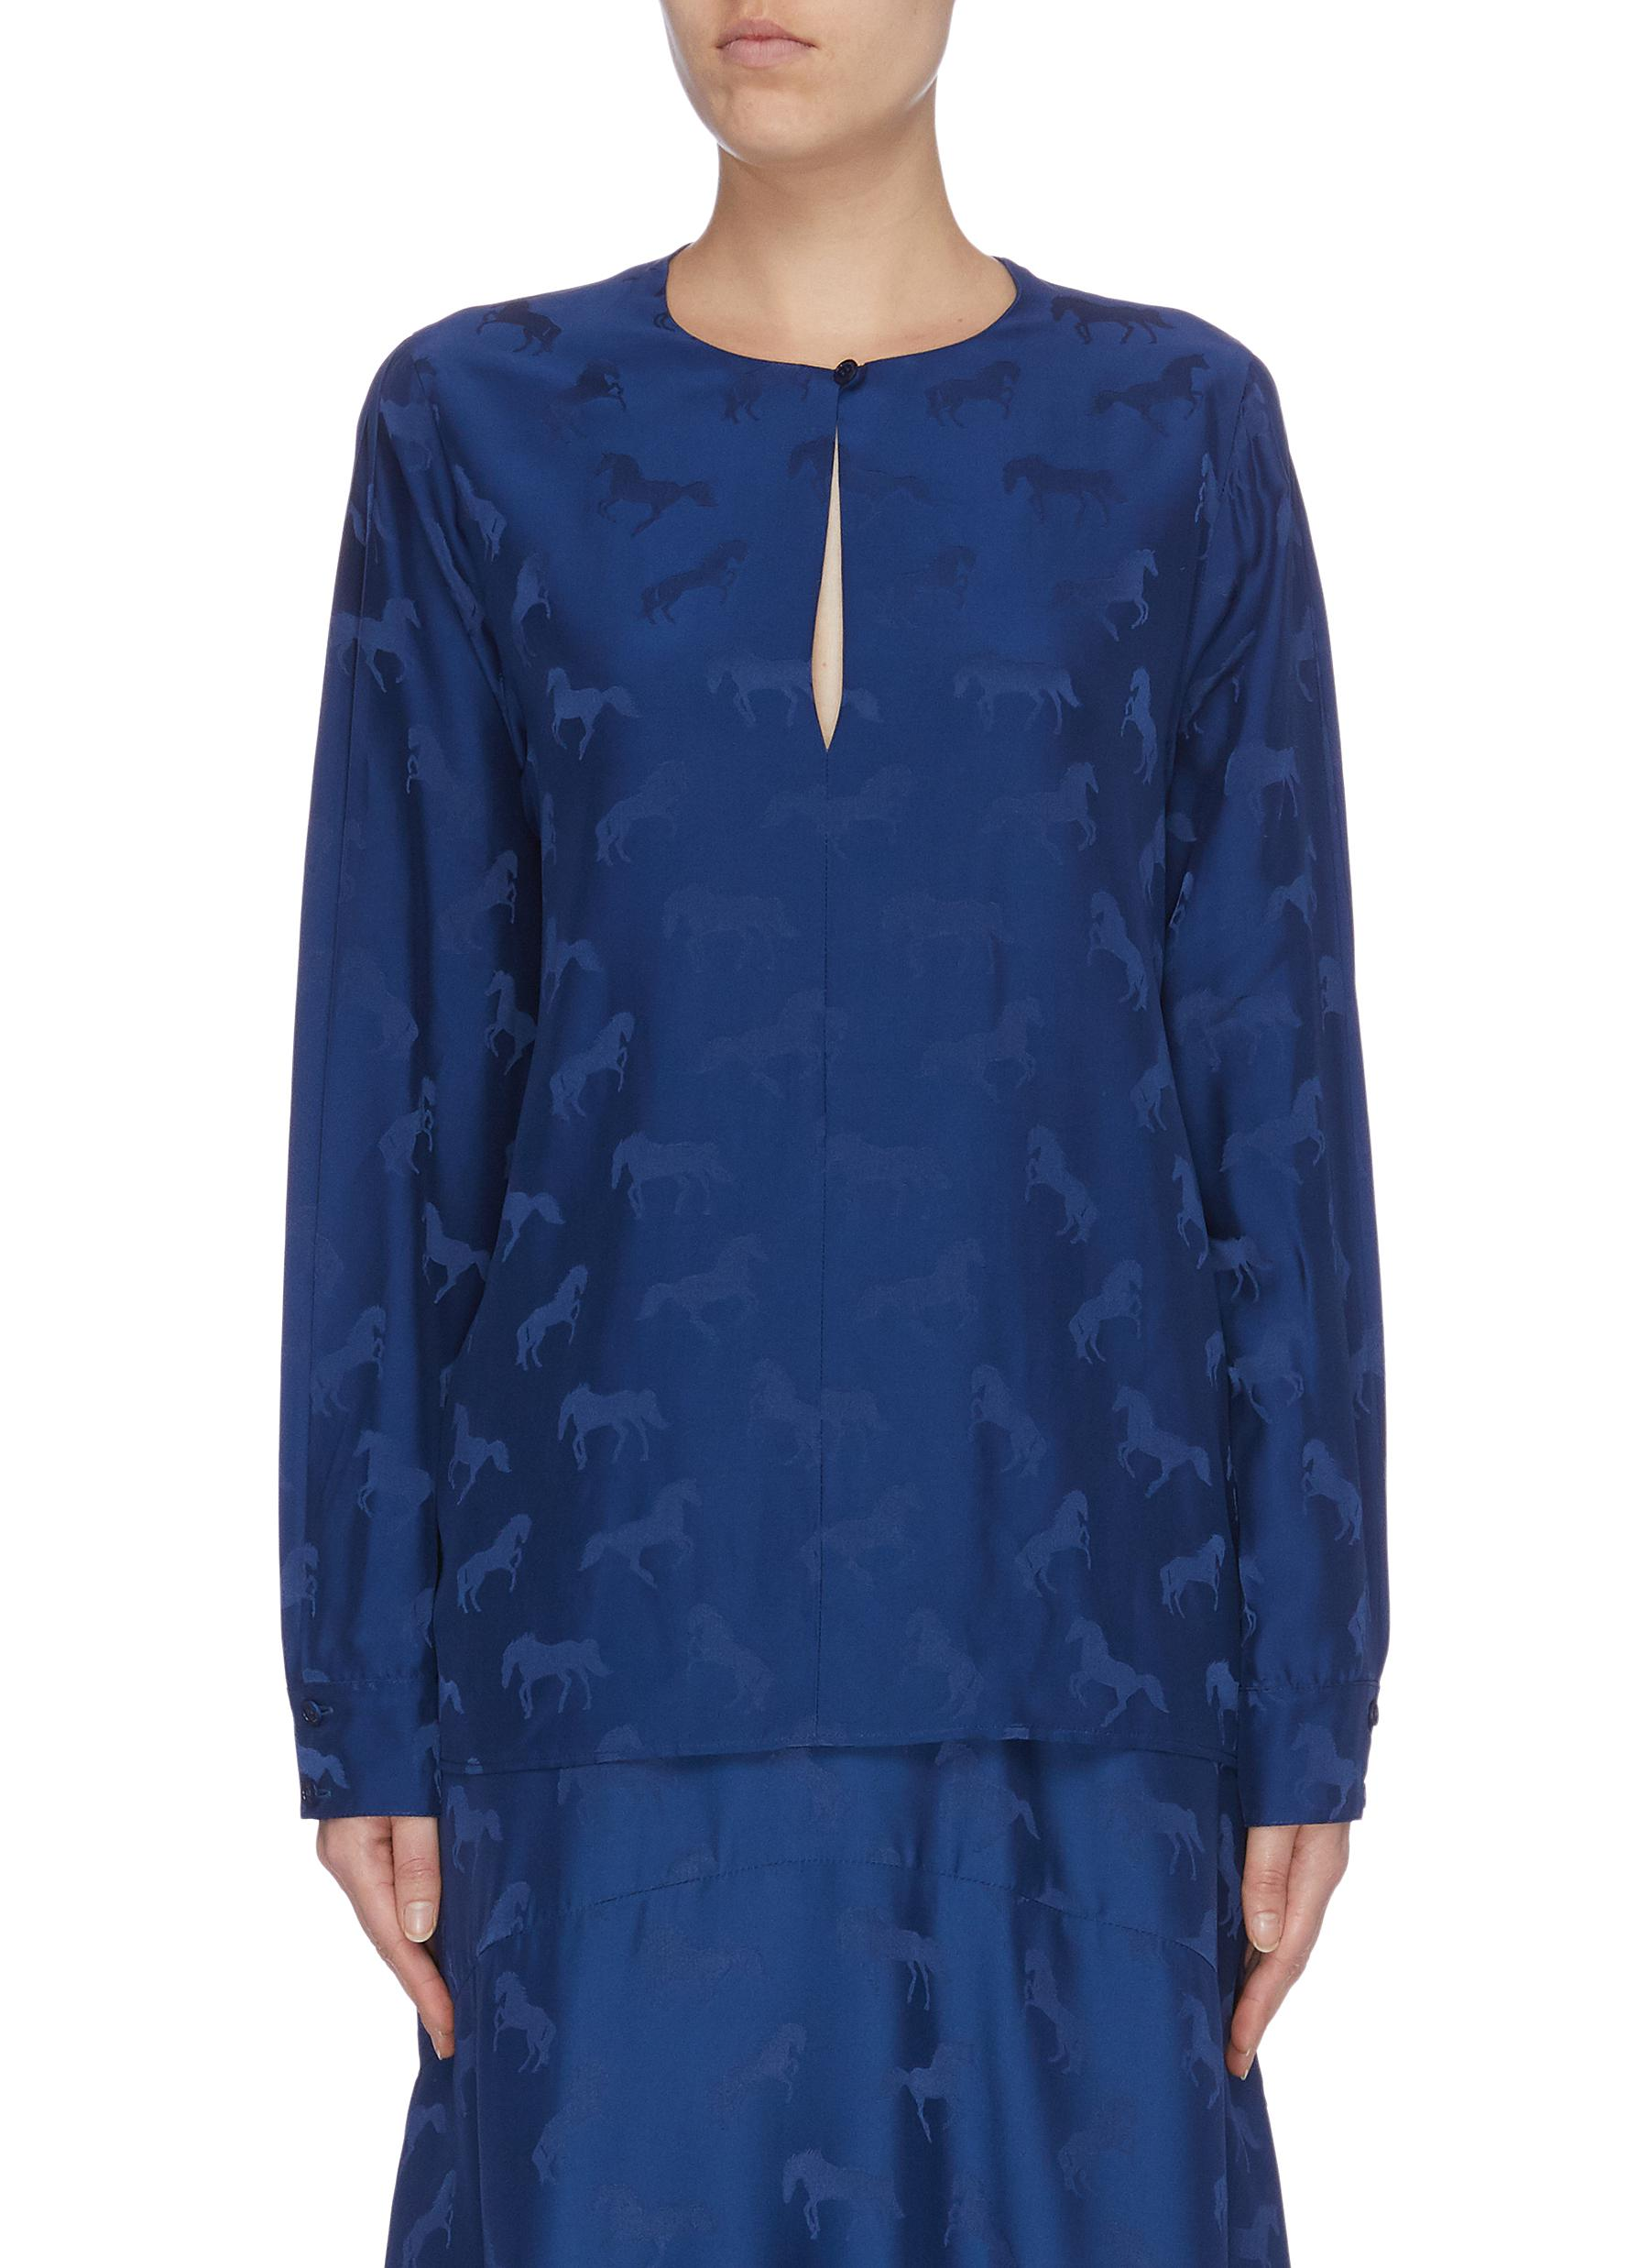 Horse jacquard keyhole front cutout sleeve top by Stella Mccartney